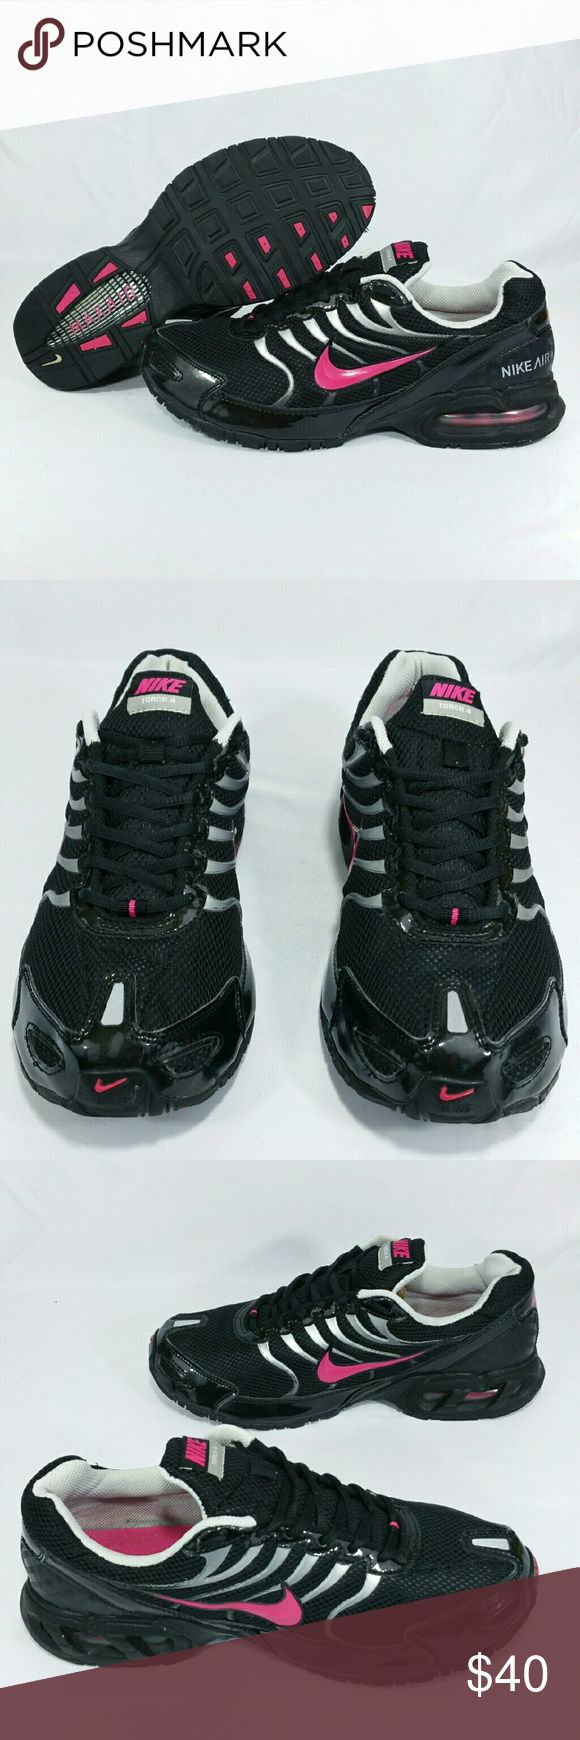 Nike air max torch 4 running shoe - Nike Air Max Torch 4 Hot Pink Black Wo S 11 Shoes